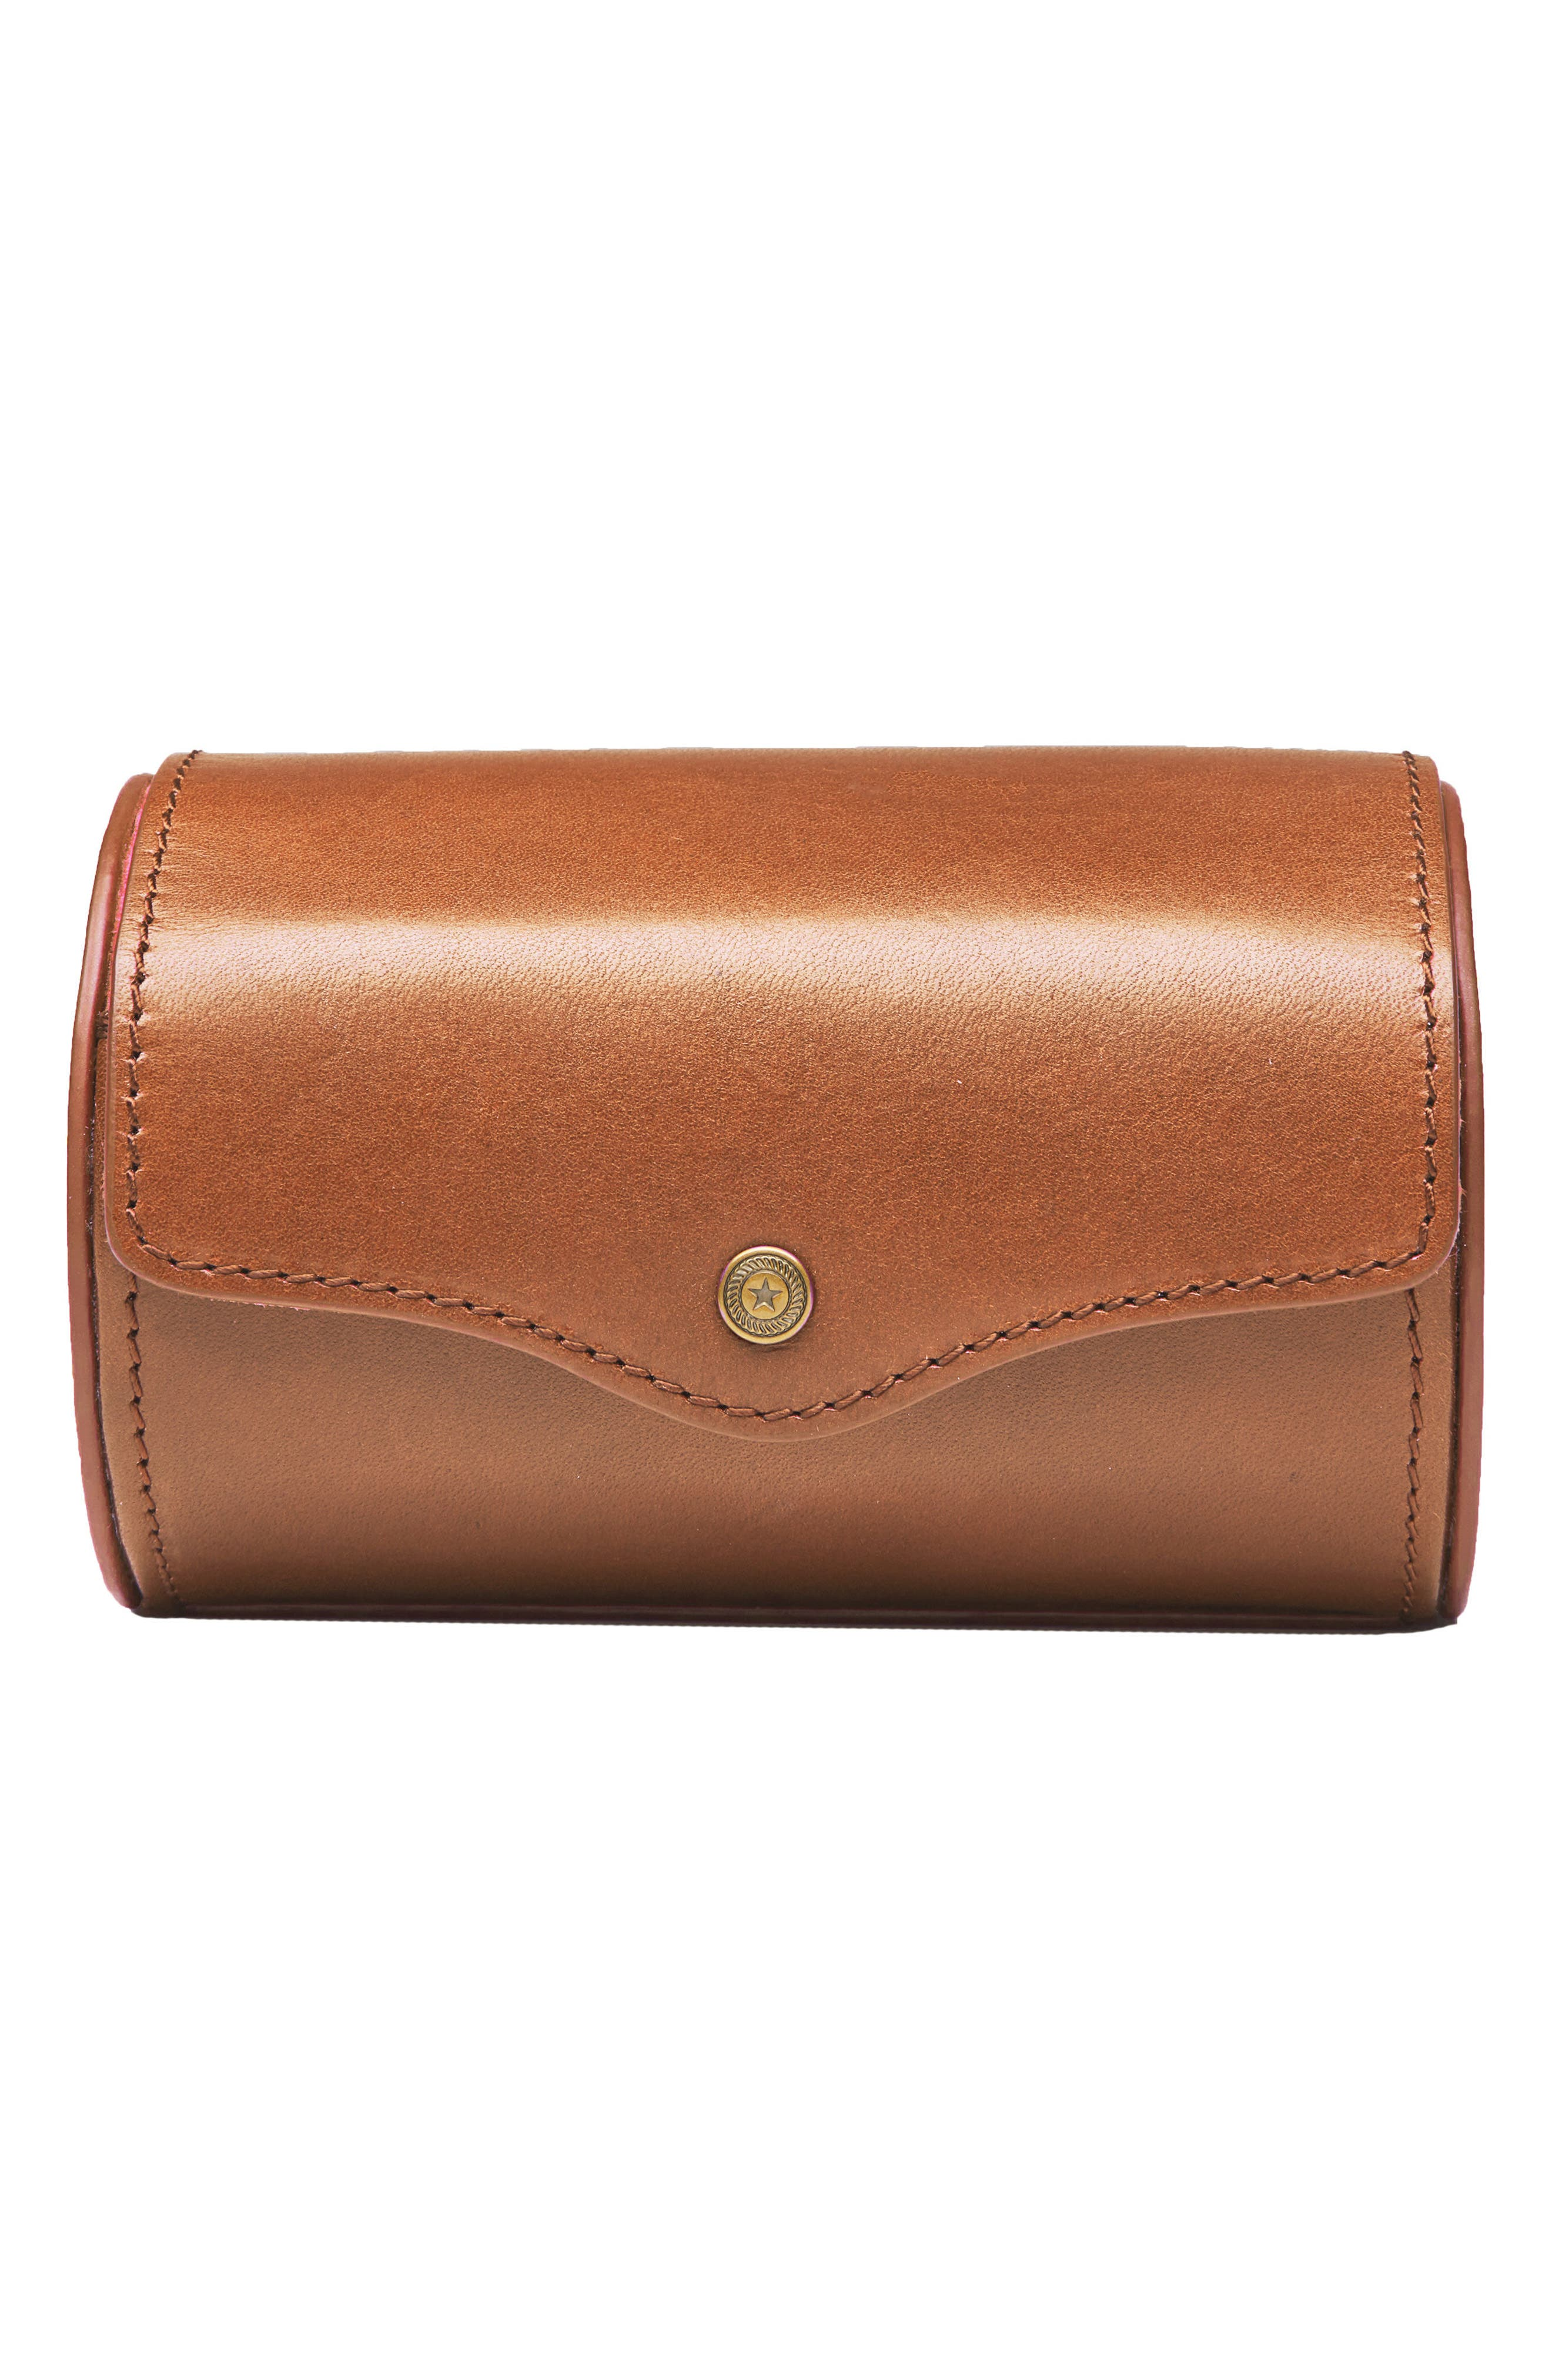 Watch Roll Case,                         Main,                         color, Tan